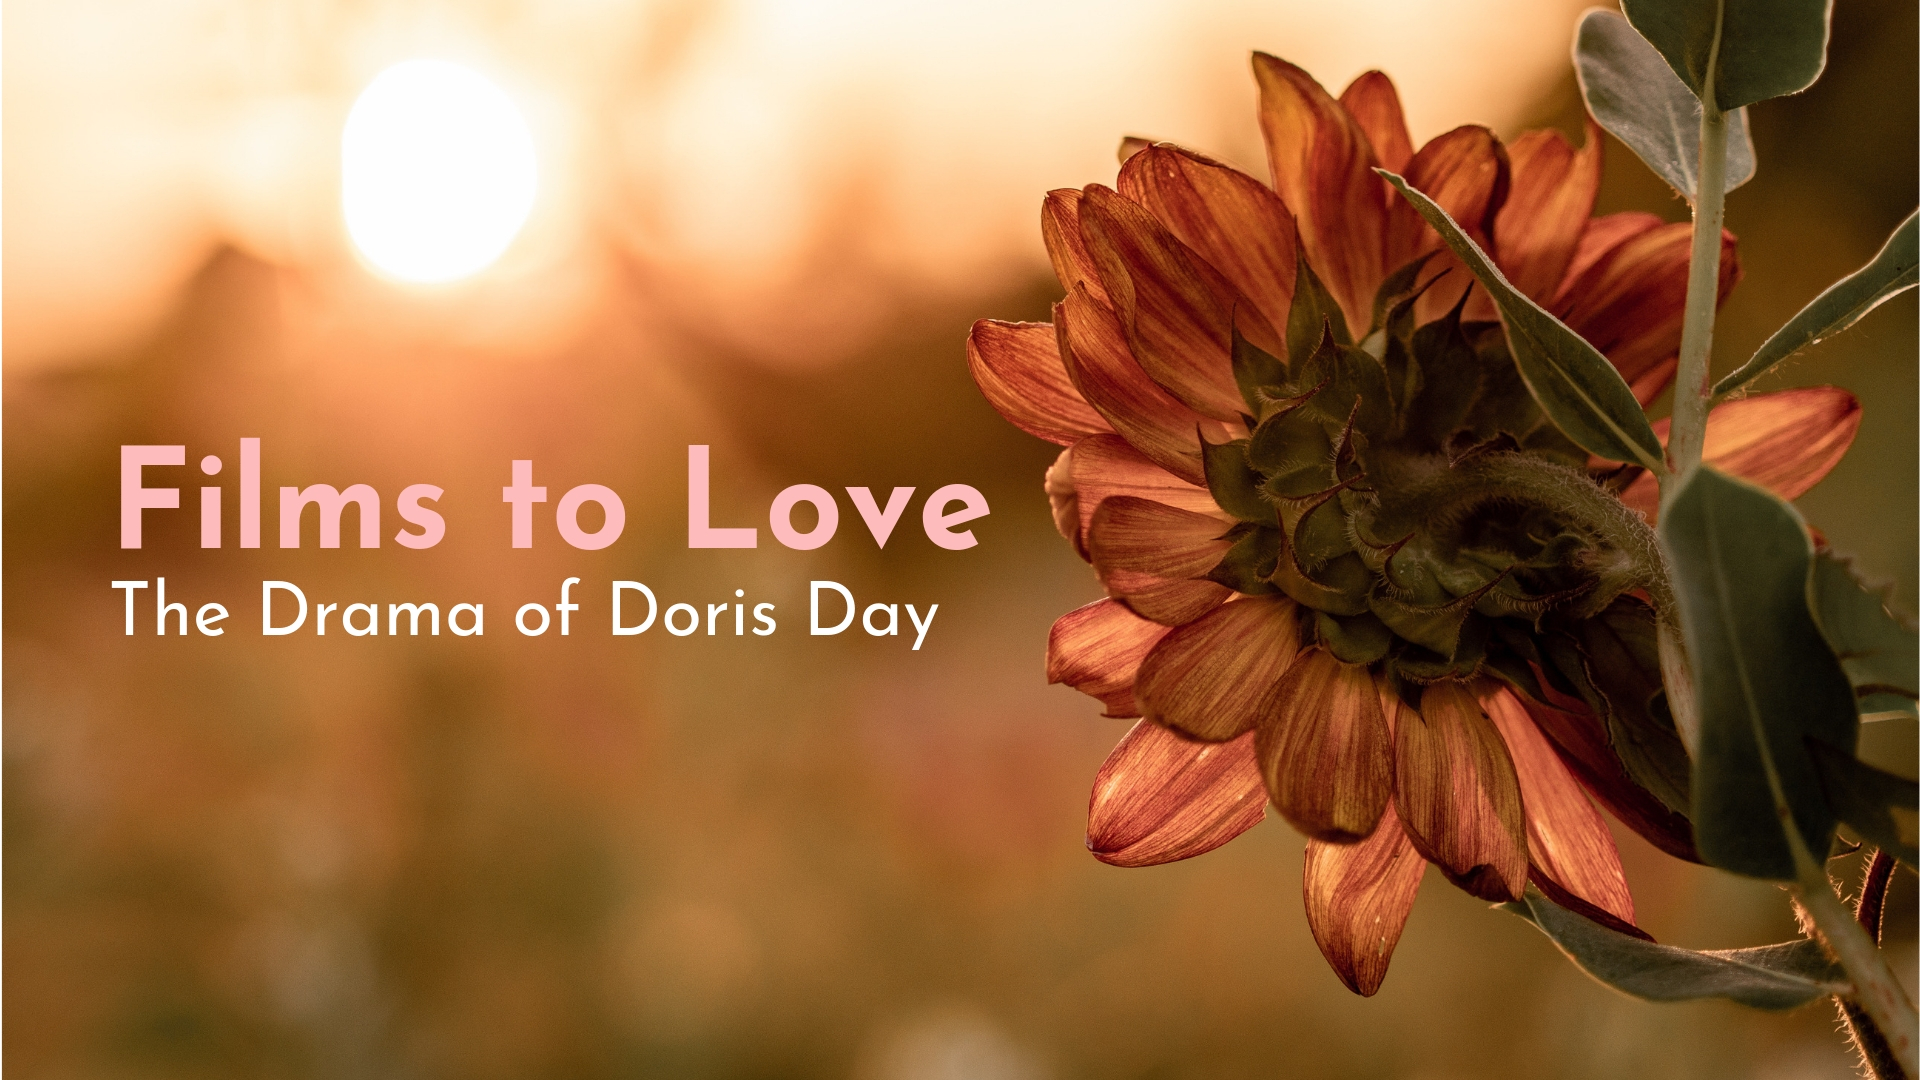 banner-films-to-love-the-drama-of-doris-day-01.jpg